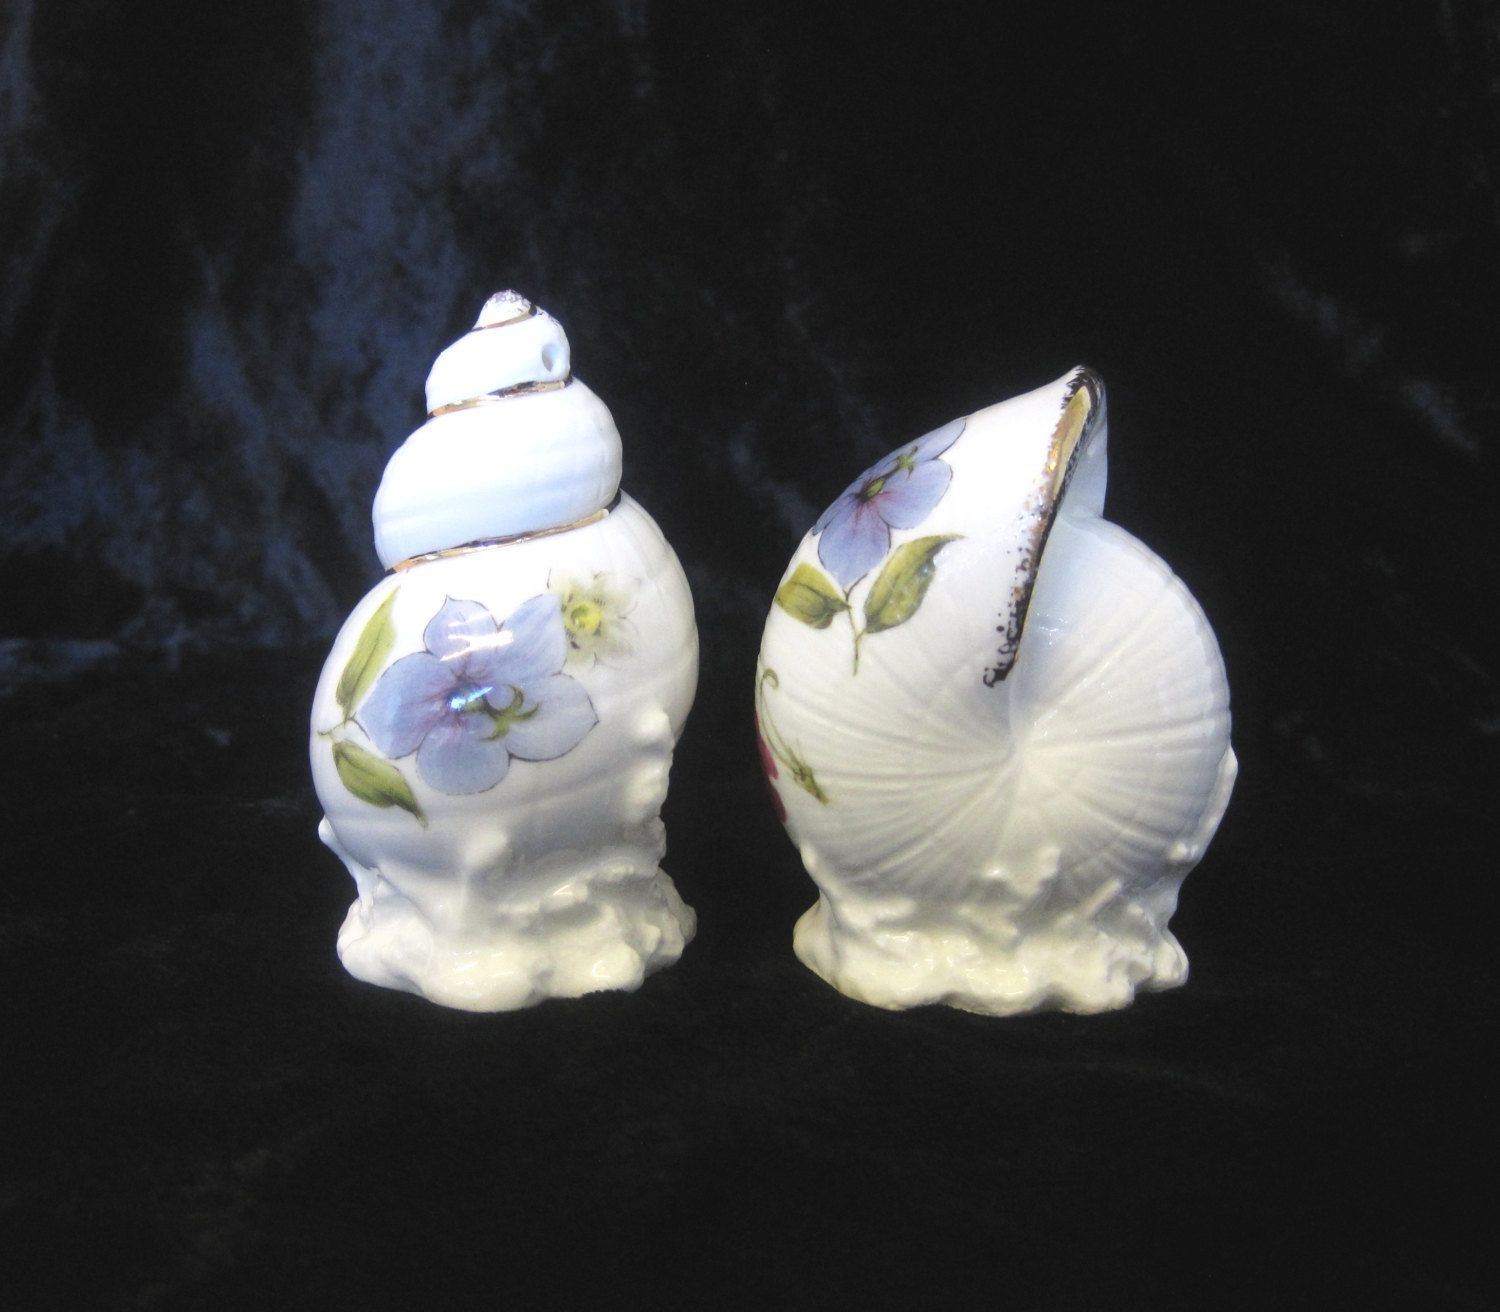 Porcelain Seashell Salt and Pepper Shakers, Floral Decoration with Gilded…SOLD